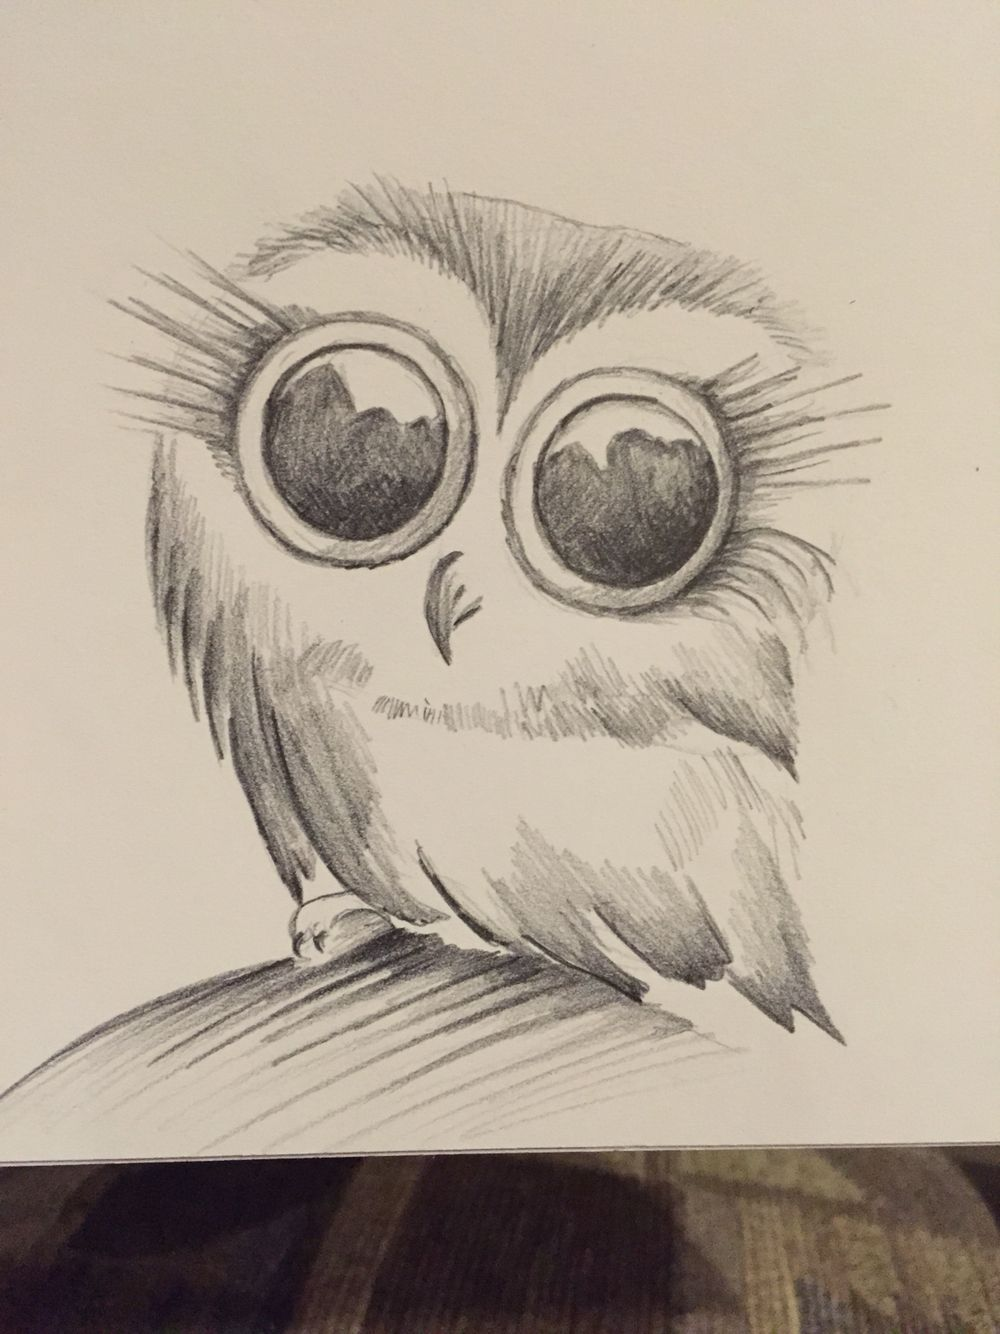 Little owl sketch pencil sketches pinterest owl for Draw the owl